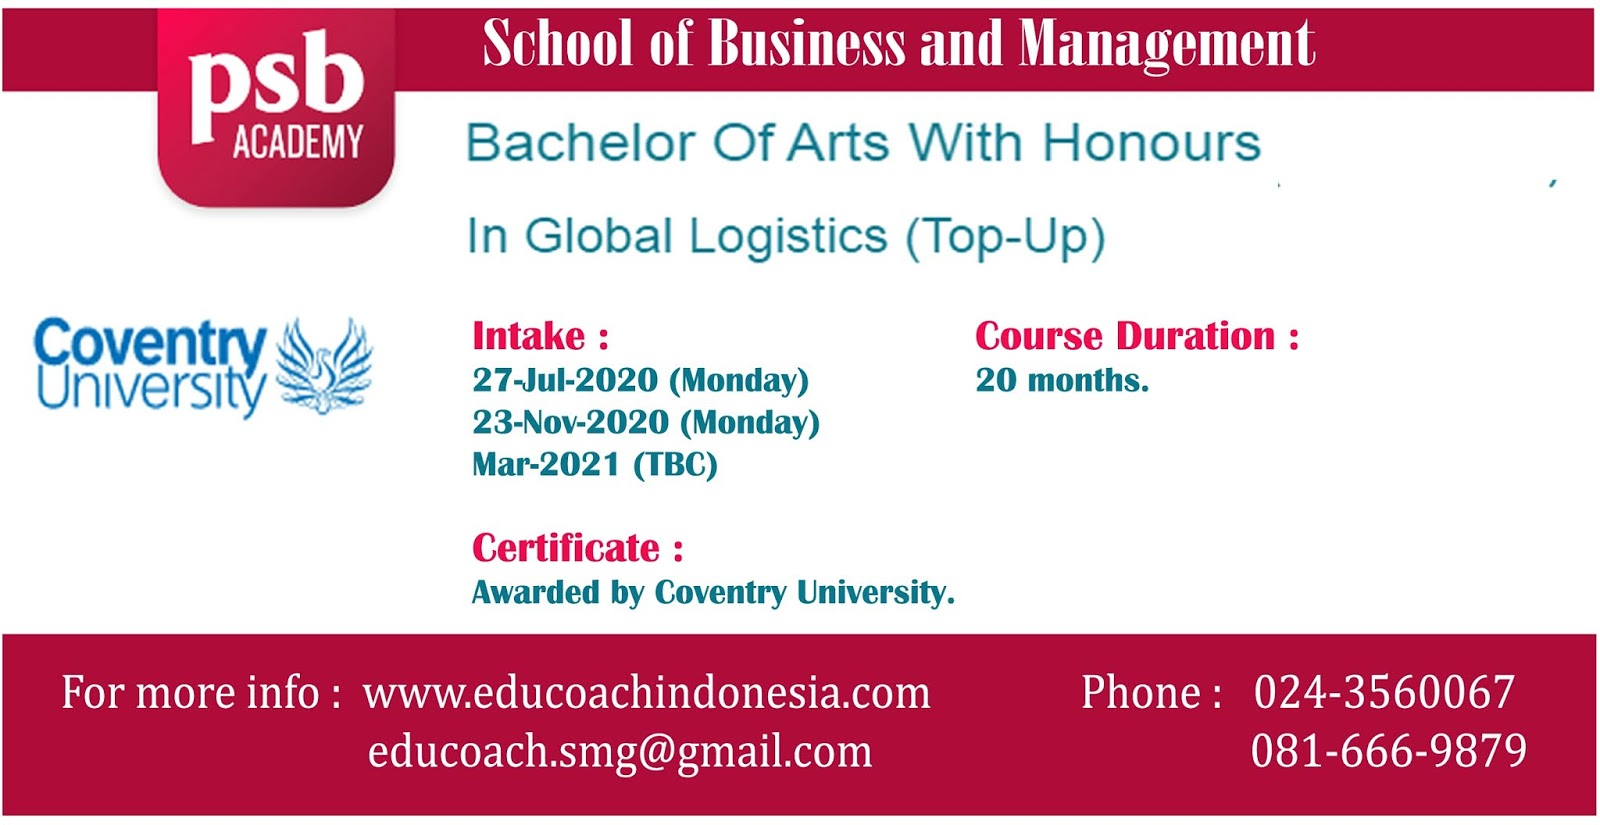 Bachelor Of Science With Honours In Global Logistics (Top-Up) | University of Coventry | PSB Academy Singapura